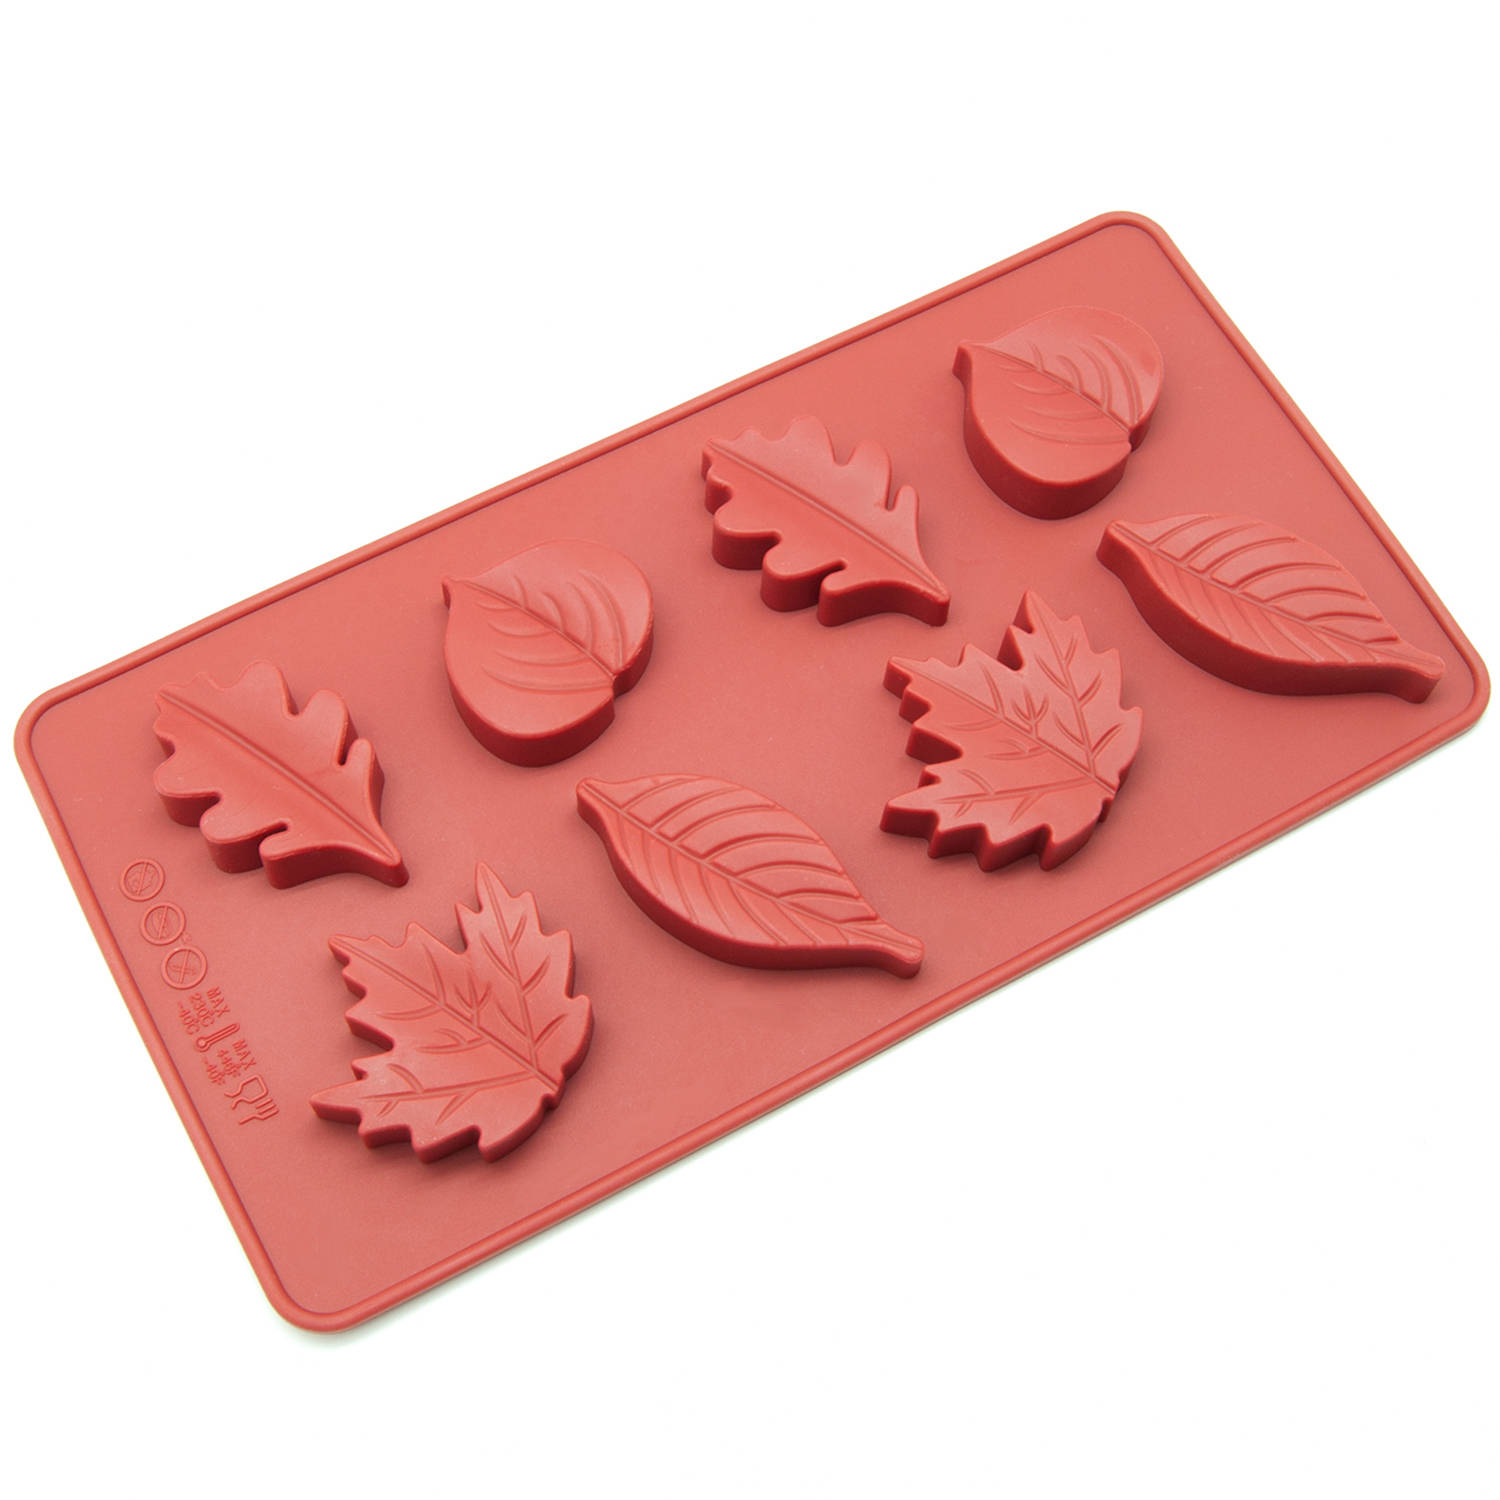 Freshware 8-Cavity Maple Leaves Silicone Mold for Chocolate, Candy and Gummy, CB-600RD by Overstock